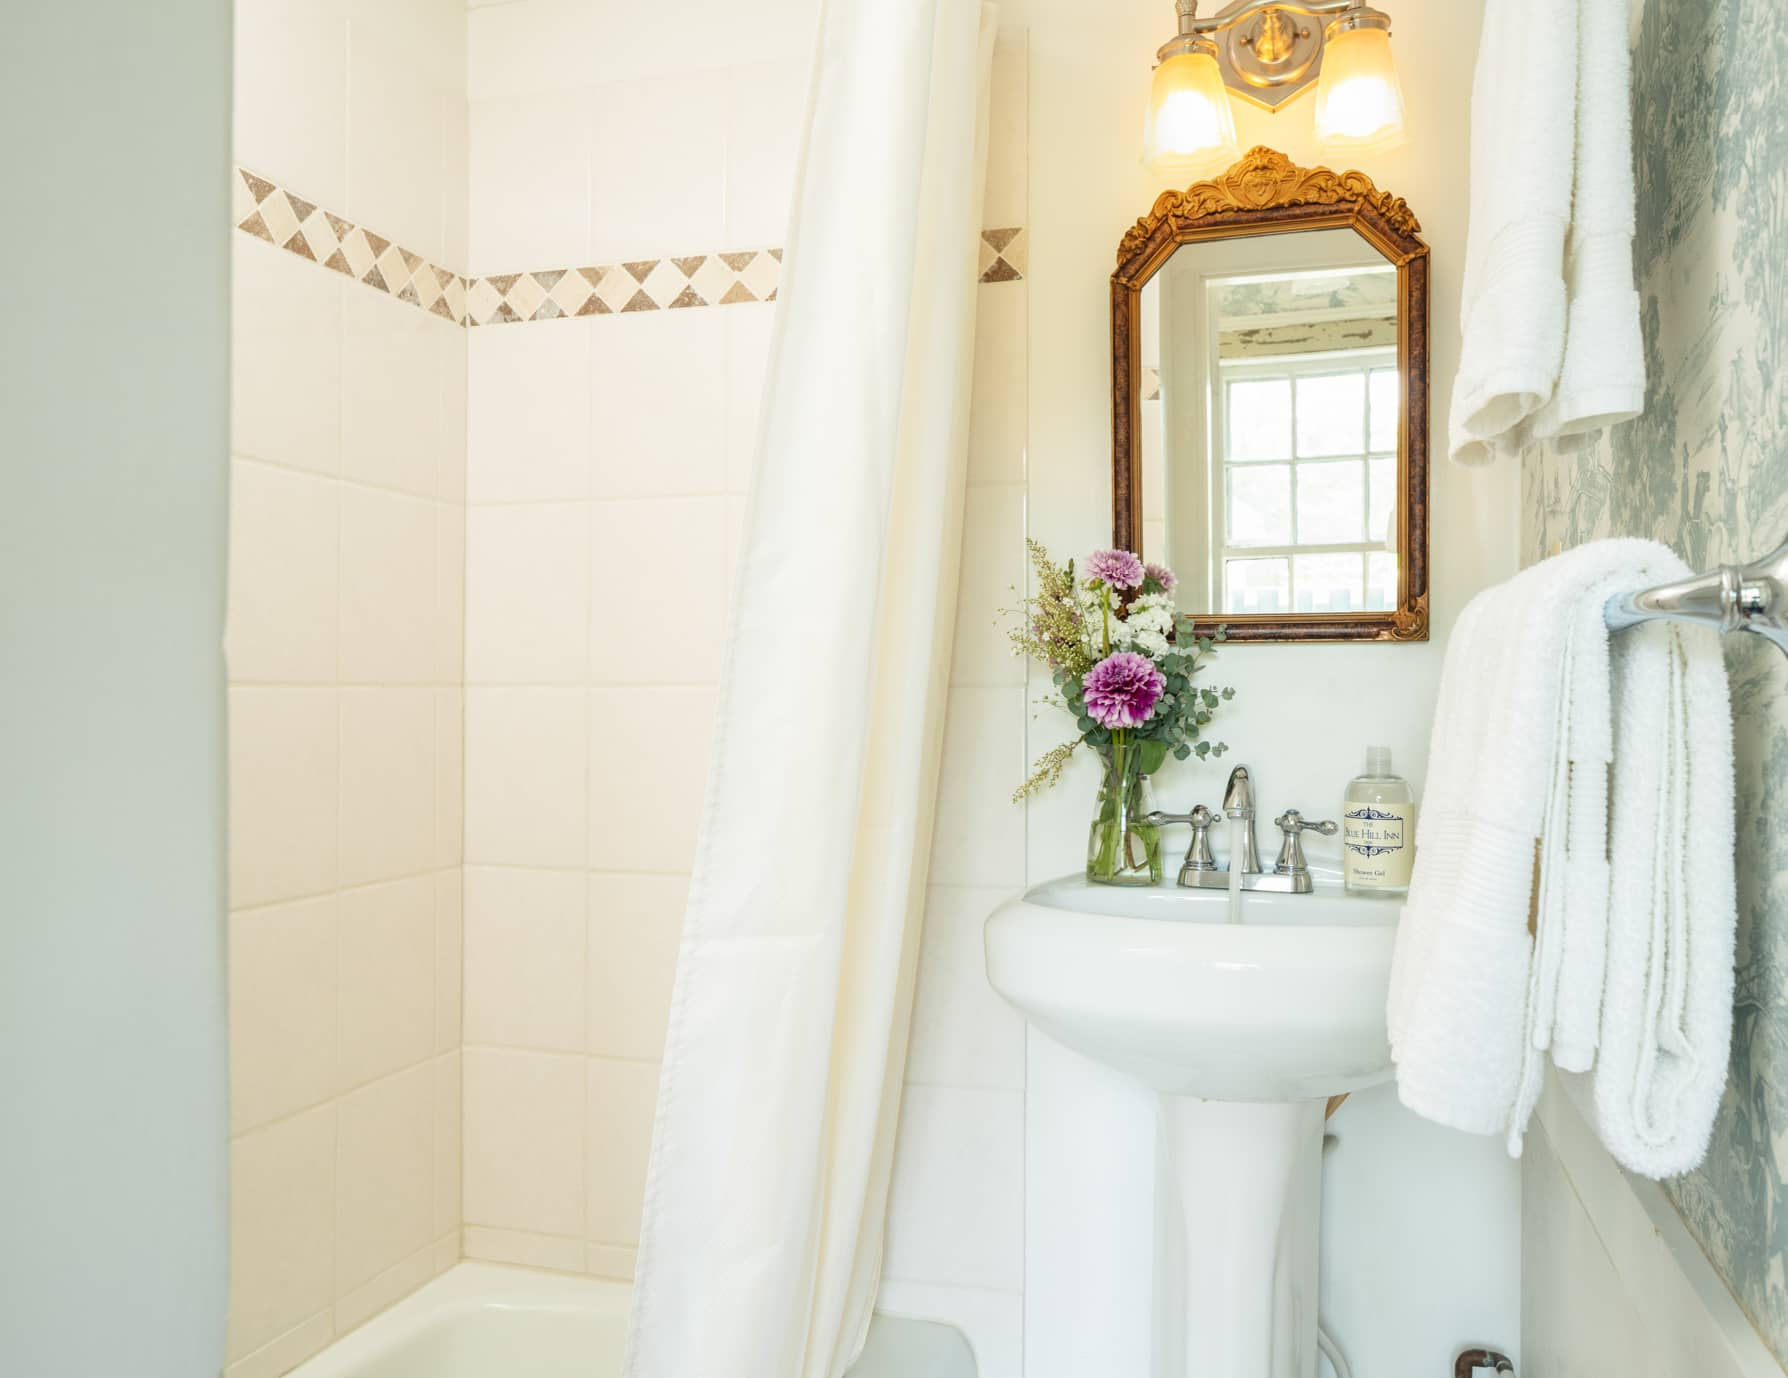 Room 6 bathroom with a small sink and mirror and a tub shower combination